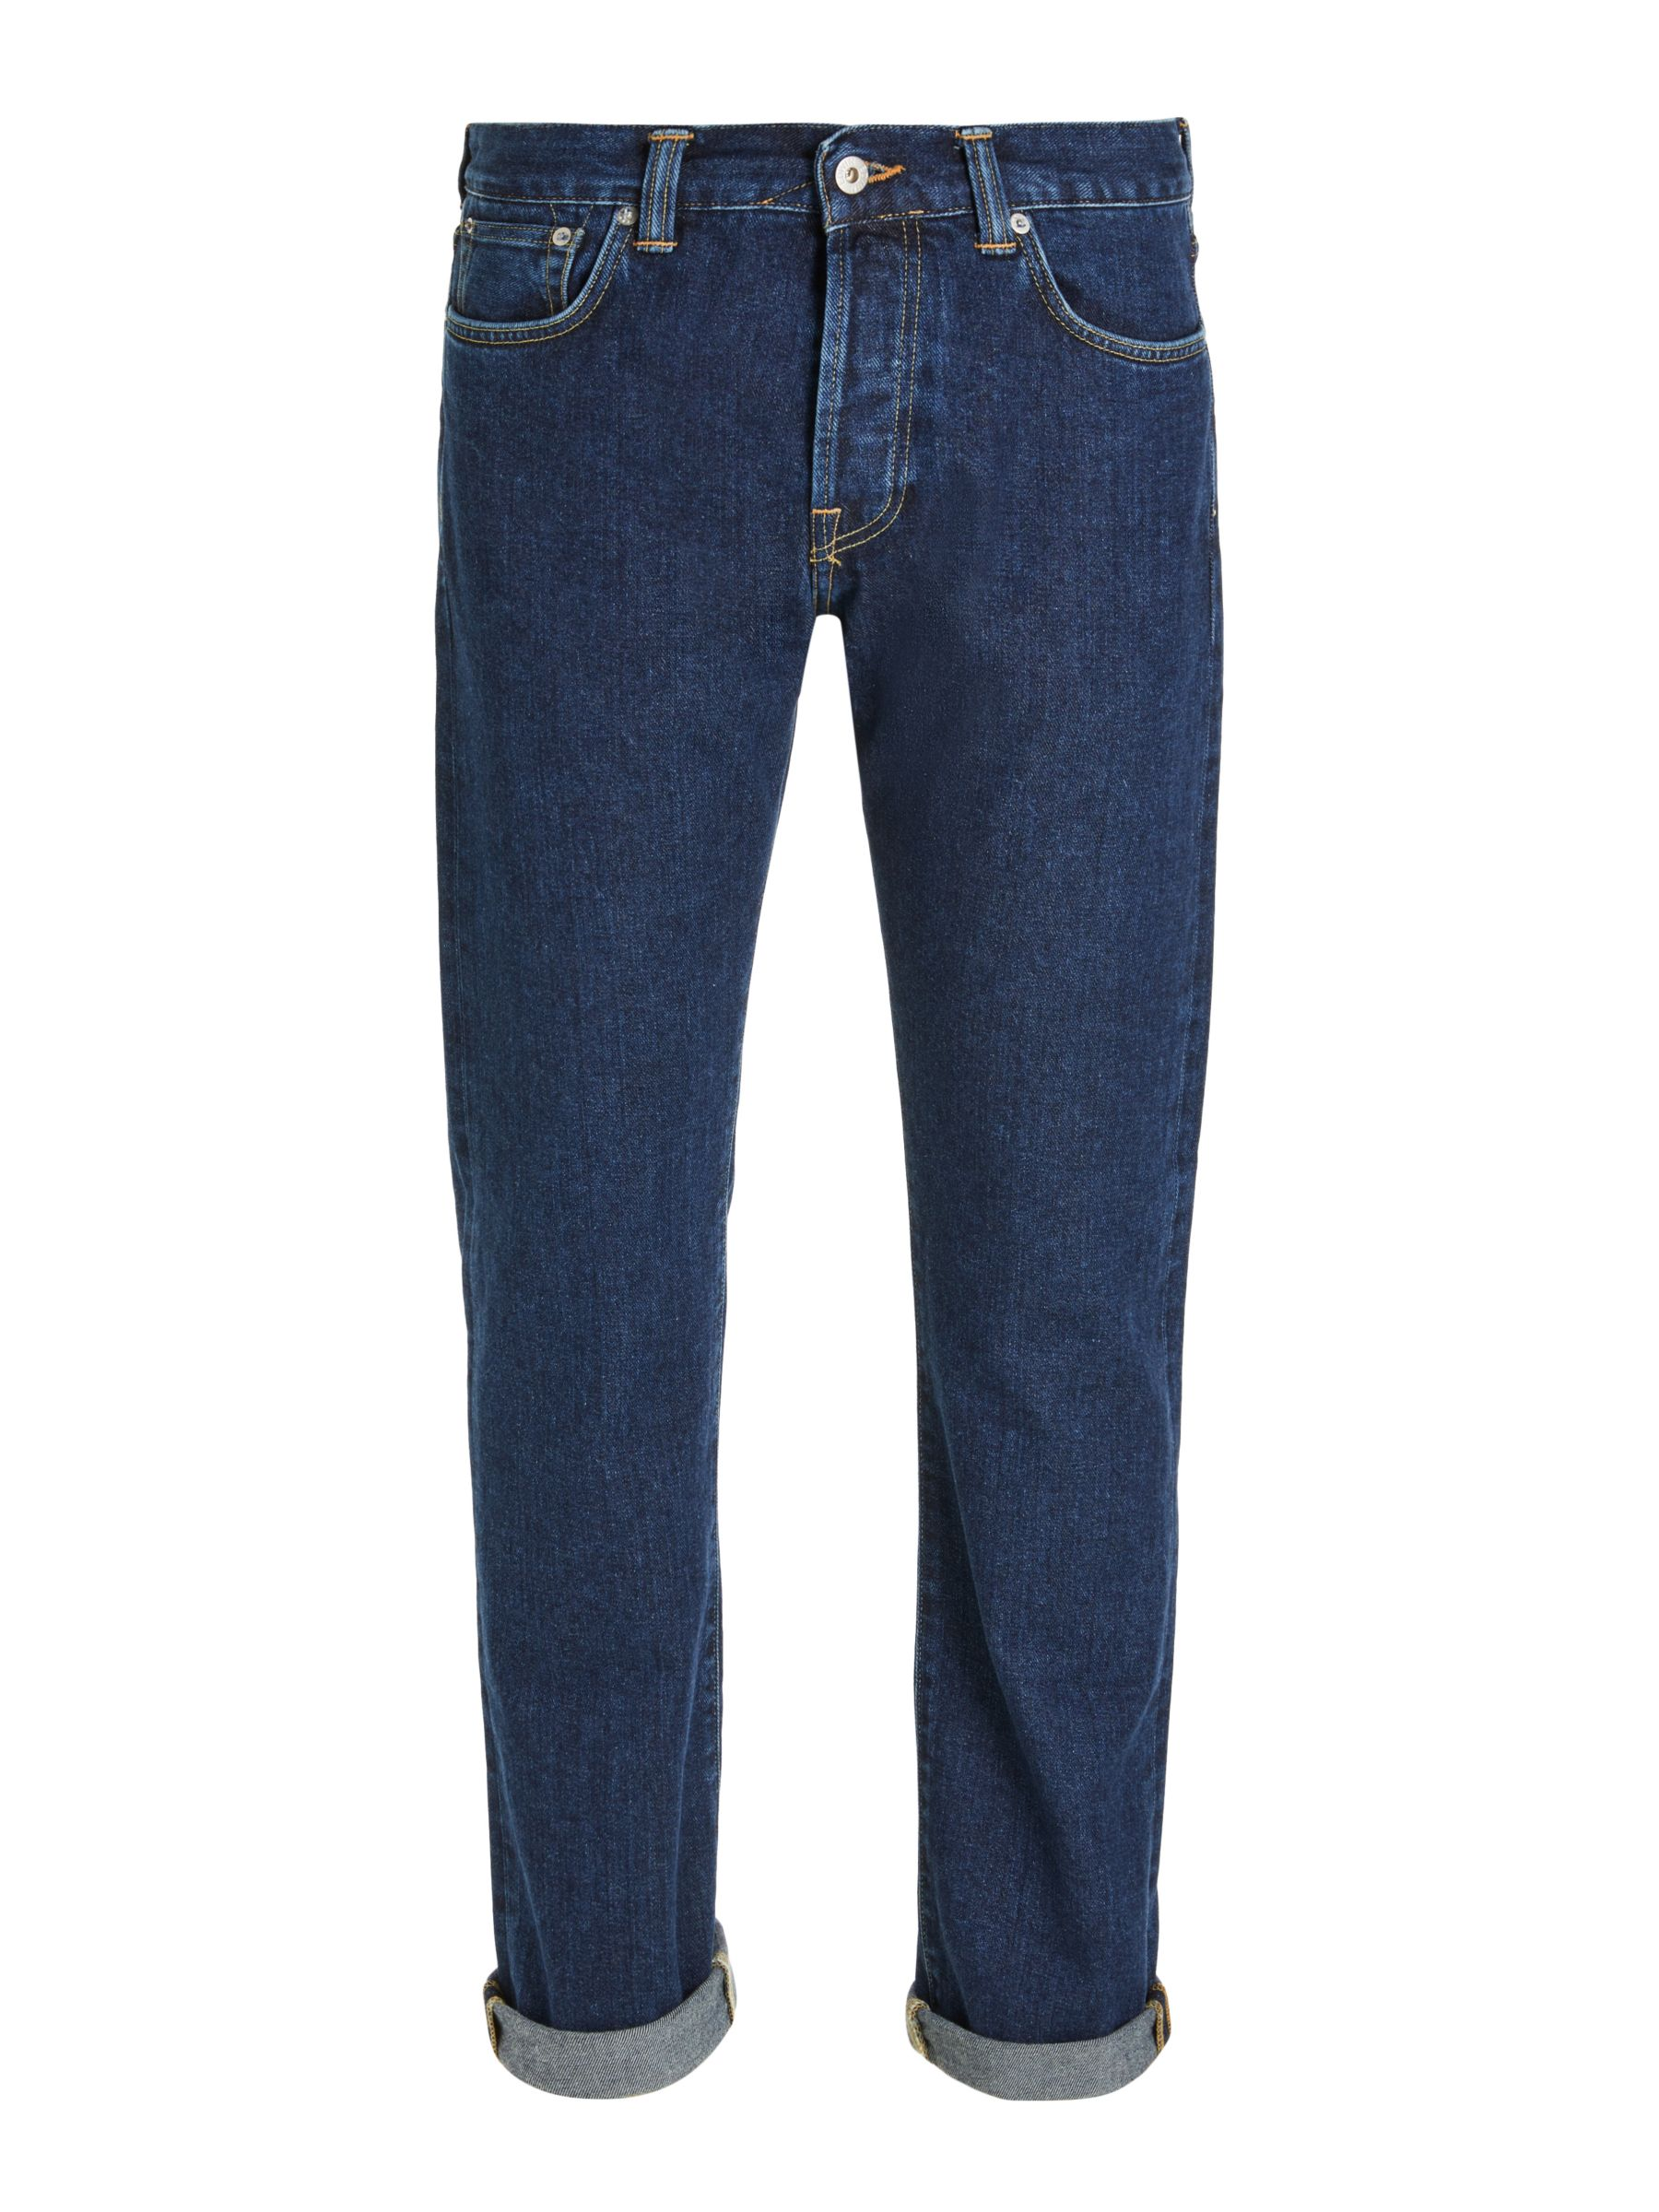 Buy Edwin ED-71 Slim Straight Jeans, Akira Wash Blue, 28 Online at johnlewis.com